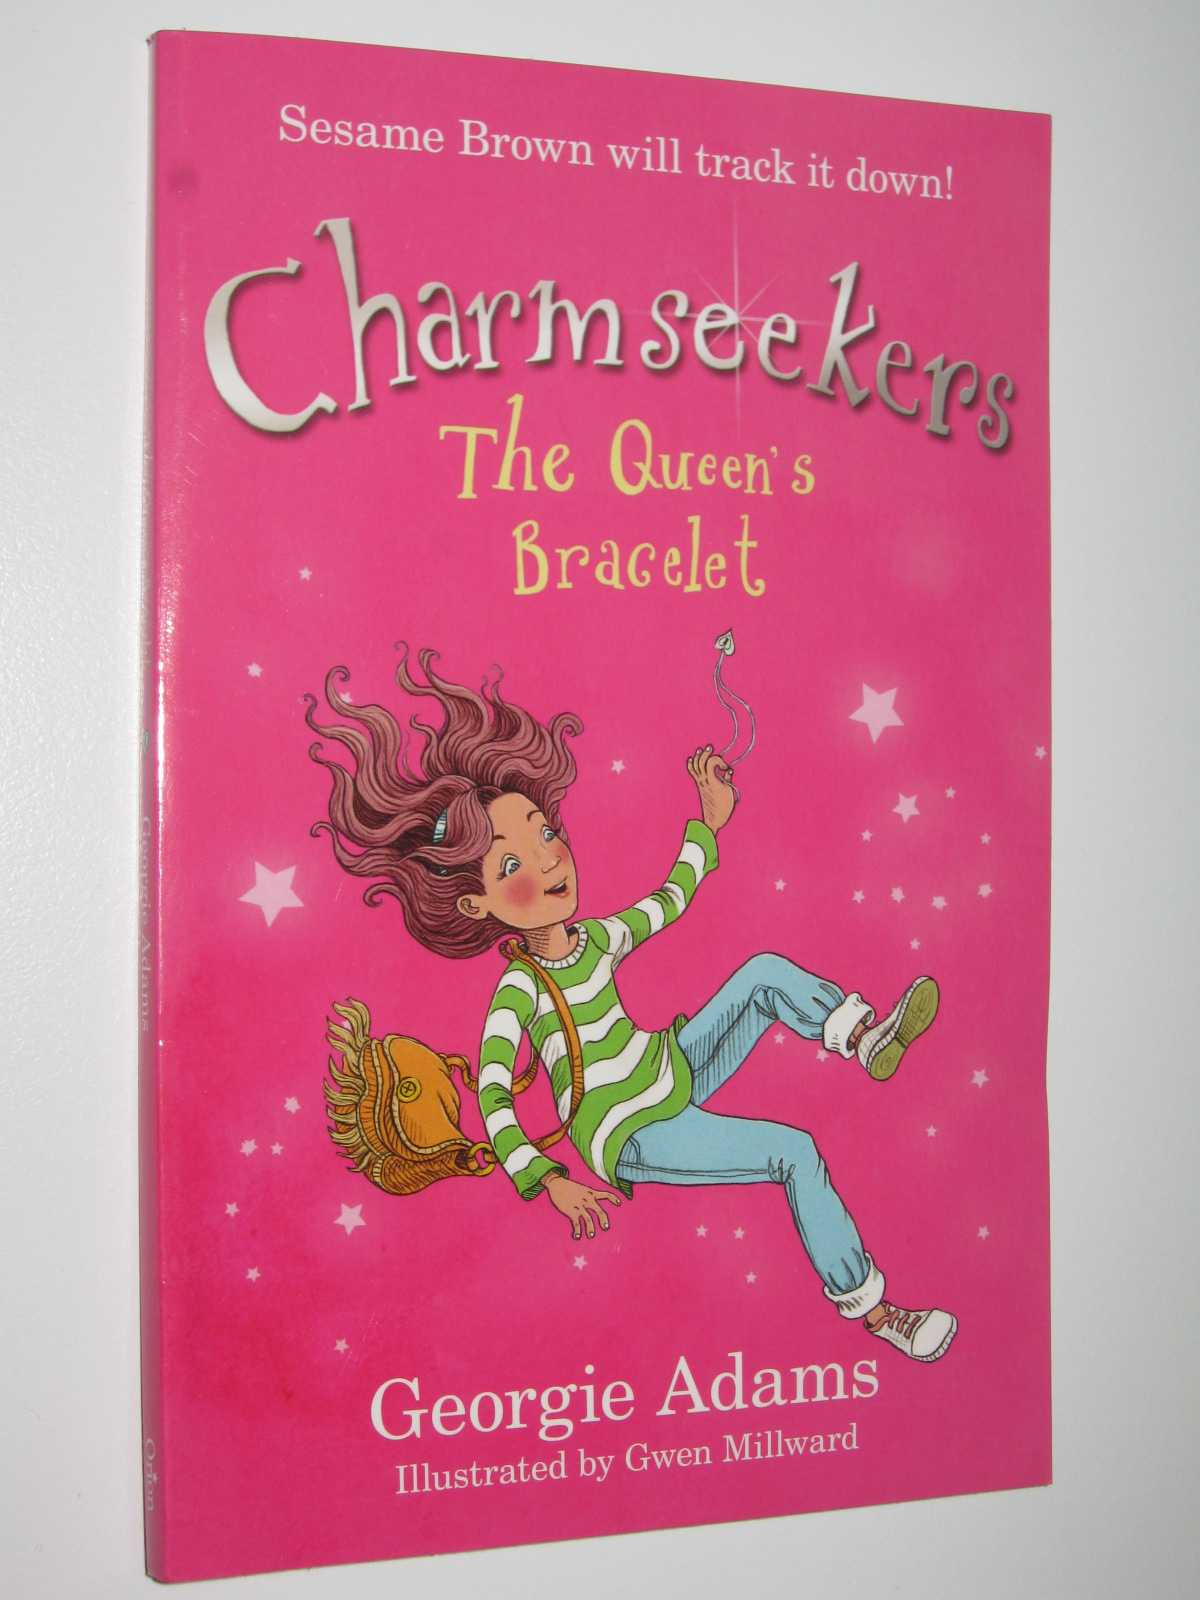 Image for The Queen's Bracelet - Charmseekers Series #1